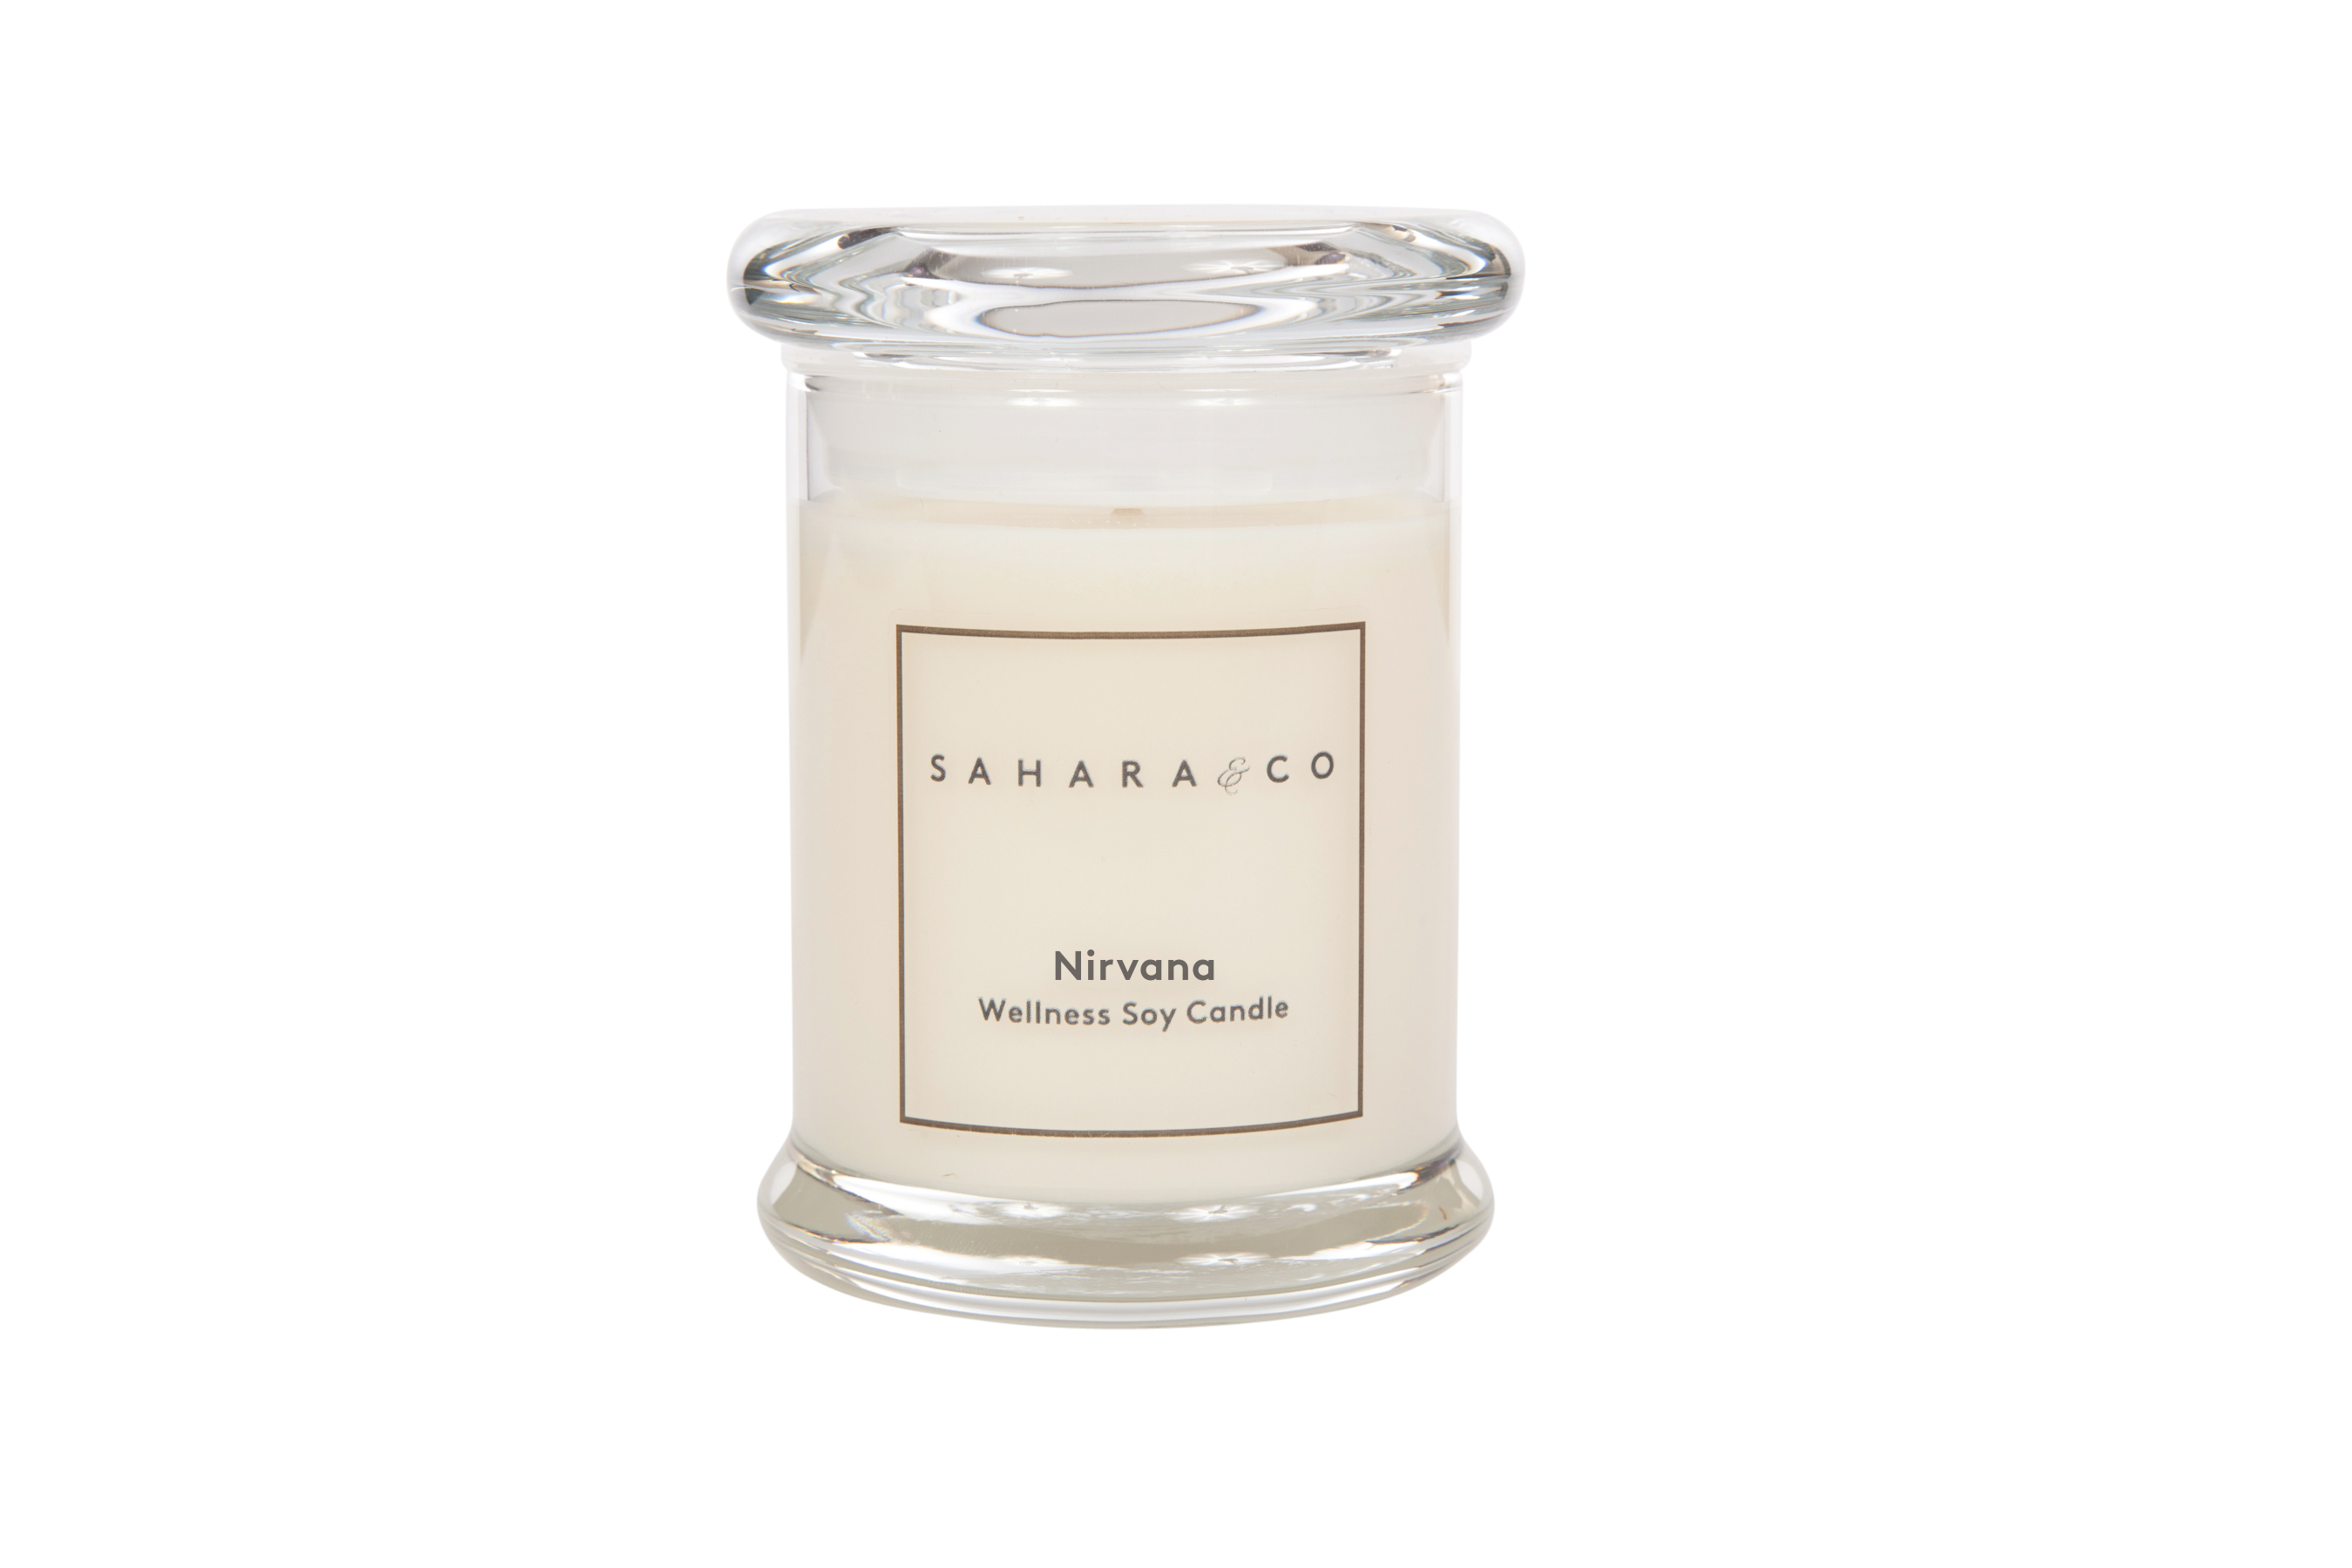 Wellness Soy Candle - Sahara and Co